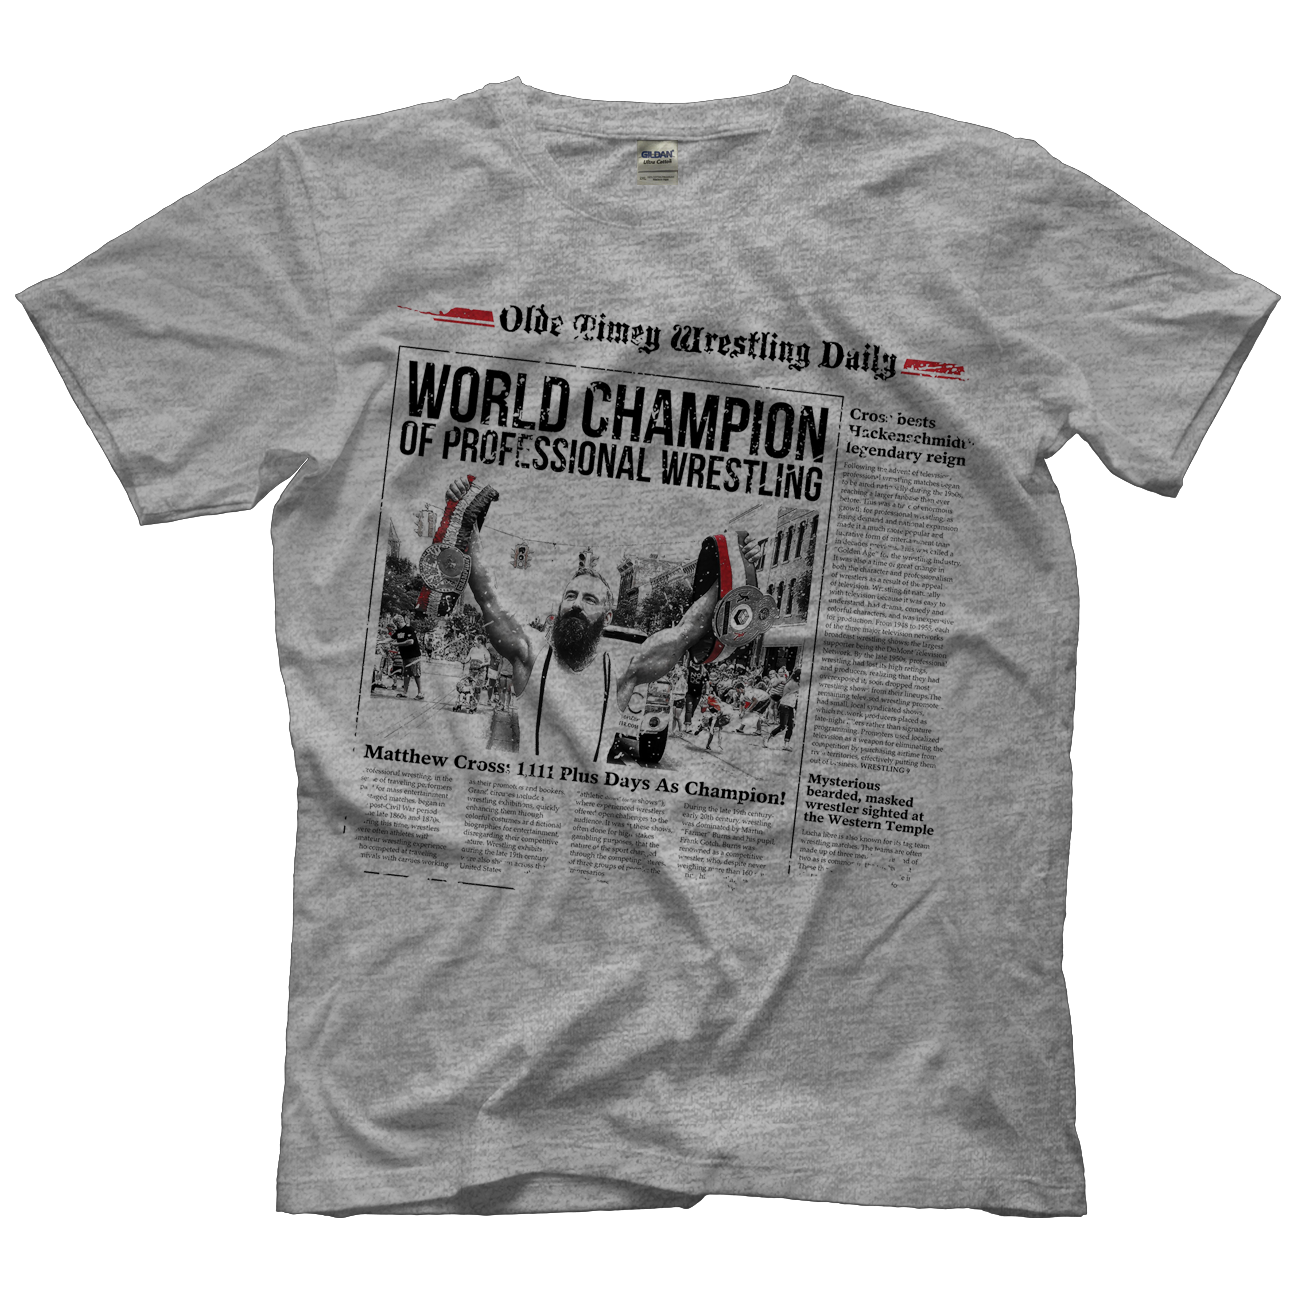 Matt Cross Front Page T-shirt